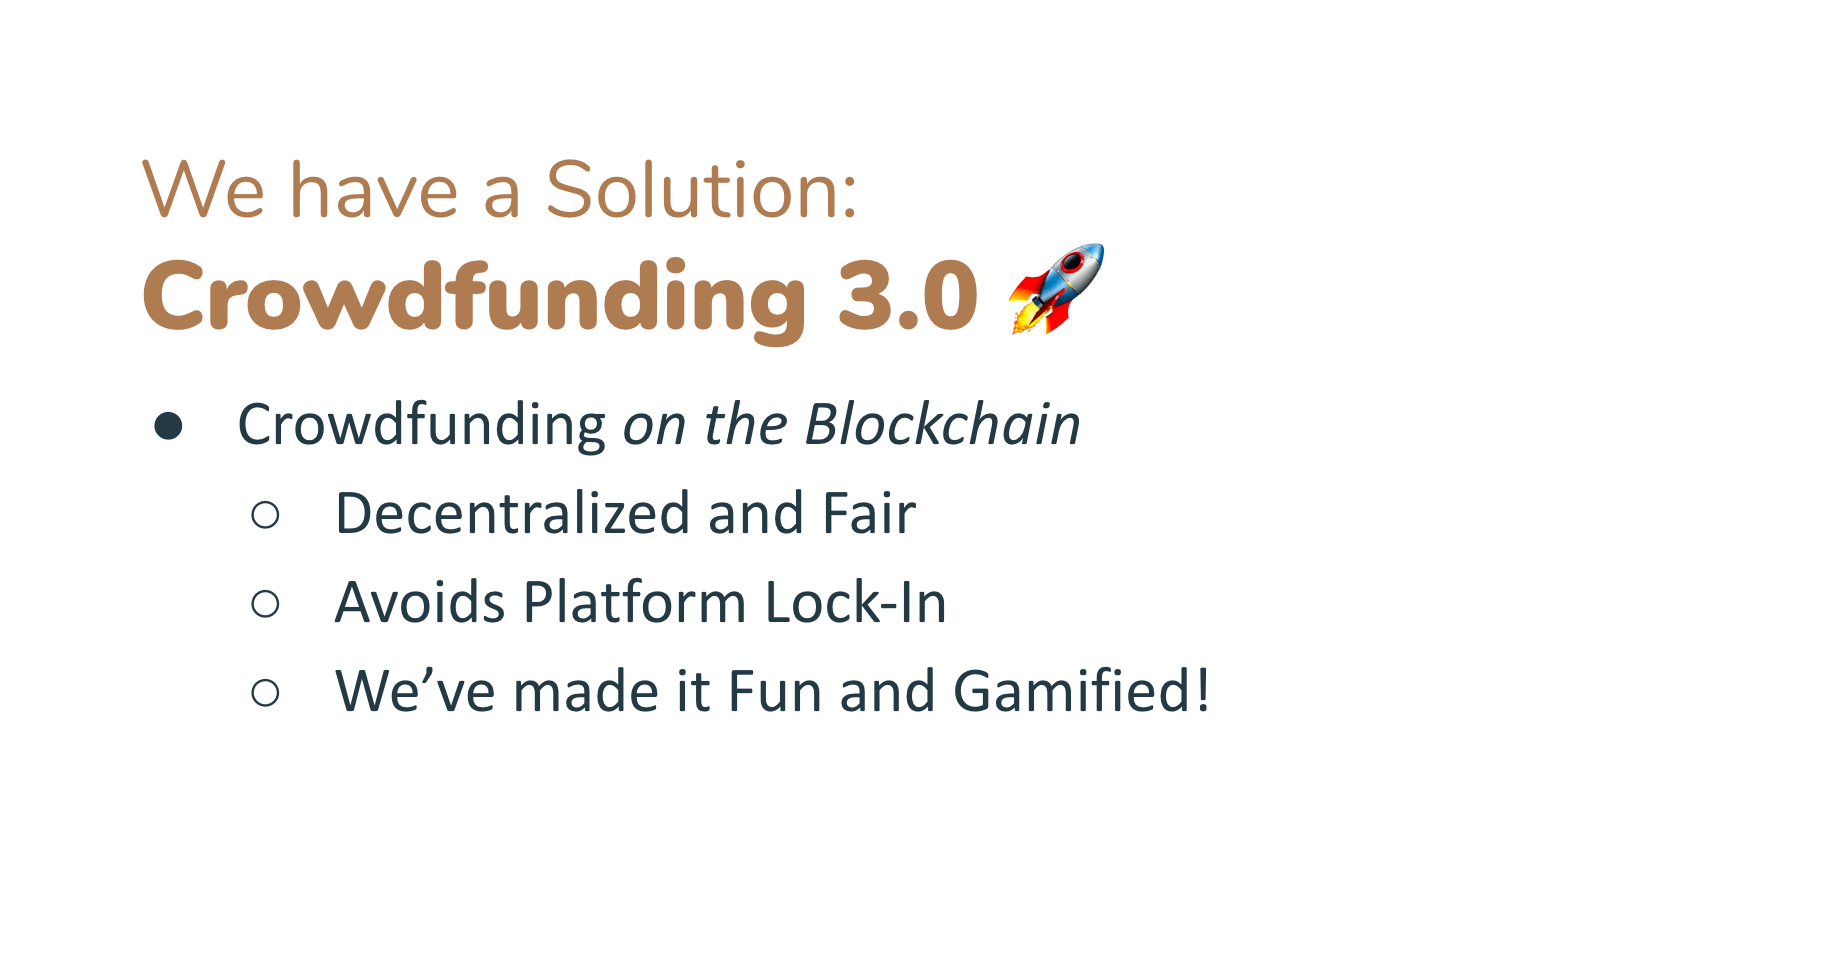 Crowdfunding can be better